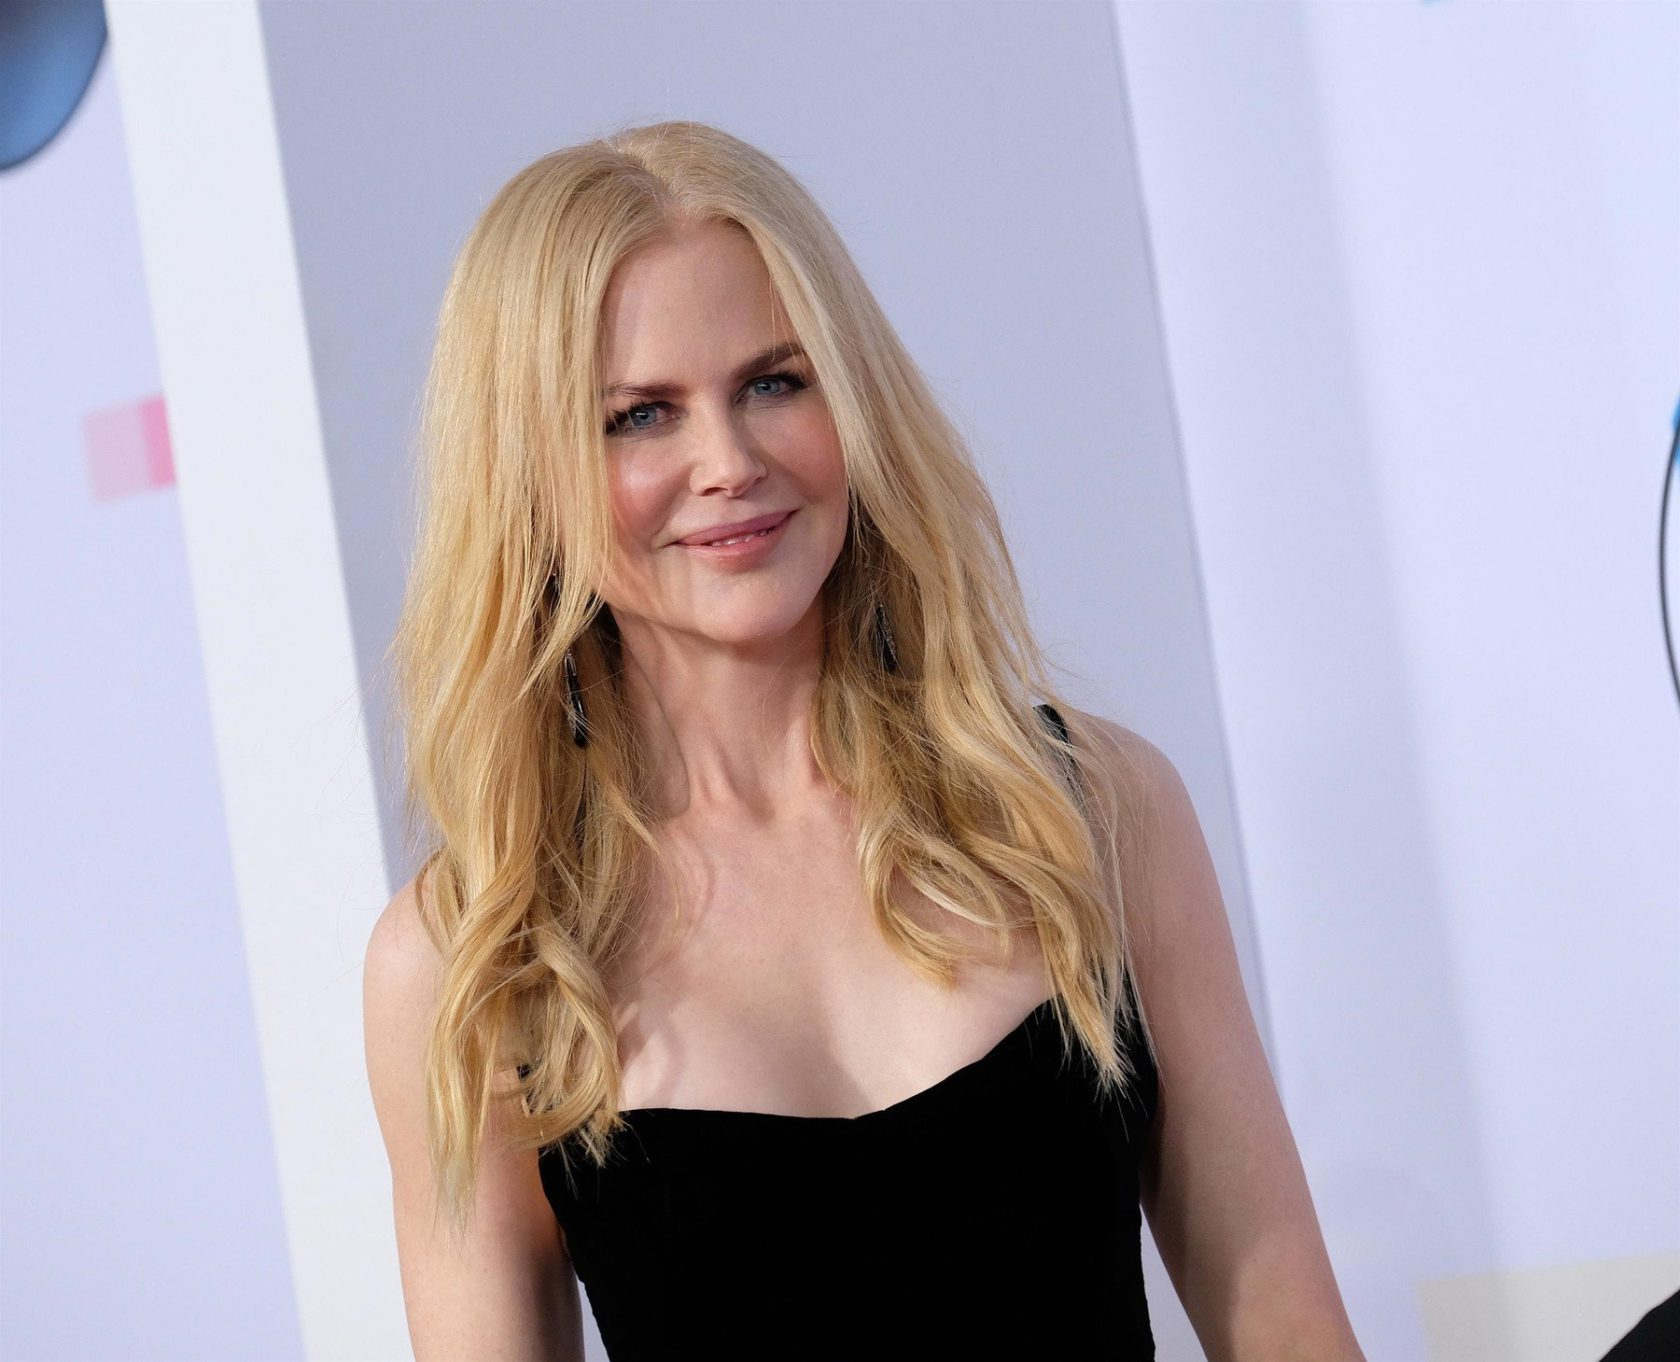 ** RIGHTS: WORLDWIDE EXCEPT IN FRANCE ** Downtown Los Angeles, CA - Celebrities attend the American Music Awards 2017 held at Microsoft Theatre in Los Angeles. Pictured: Nicole Kidman *UK Clients - Pictures Containing Children Please Pixelate Face Prior To Publication*, Image: 355732995, License: Rights-managed, Restrictions: , Model Release: no, Credit line: Profimedia, AKM-GSI